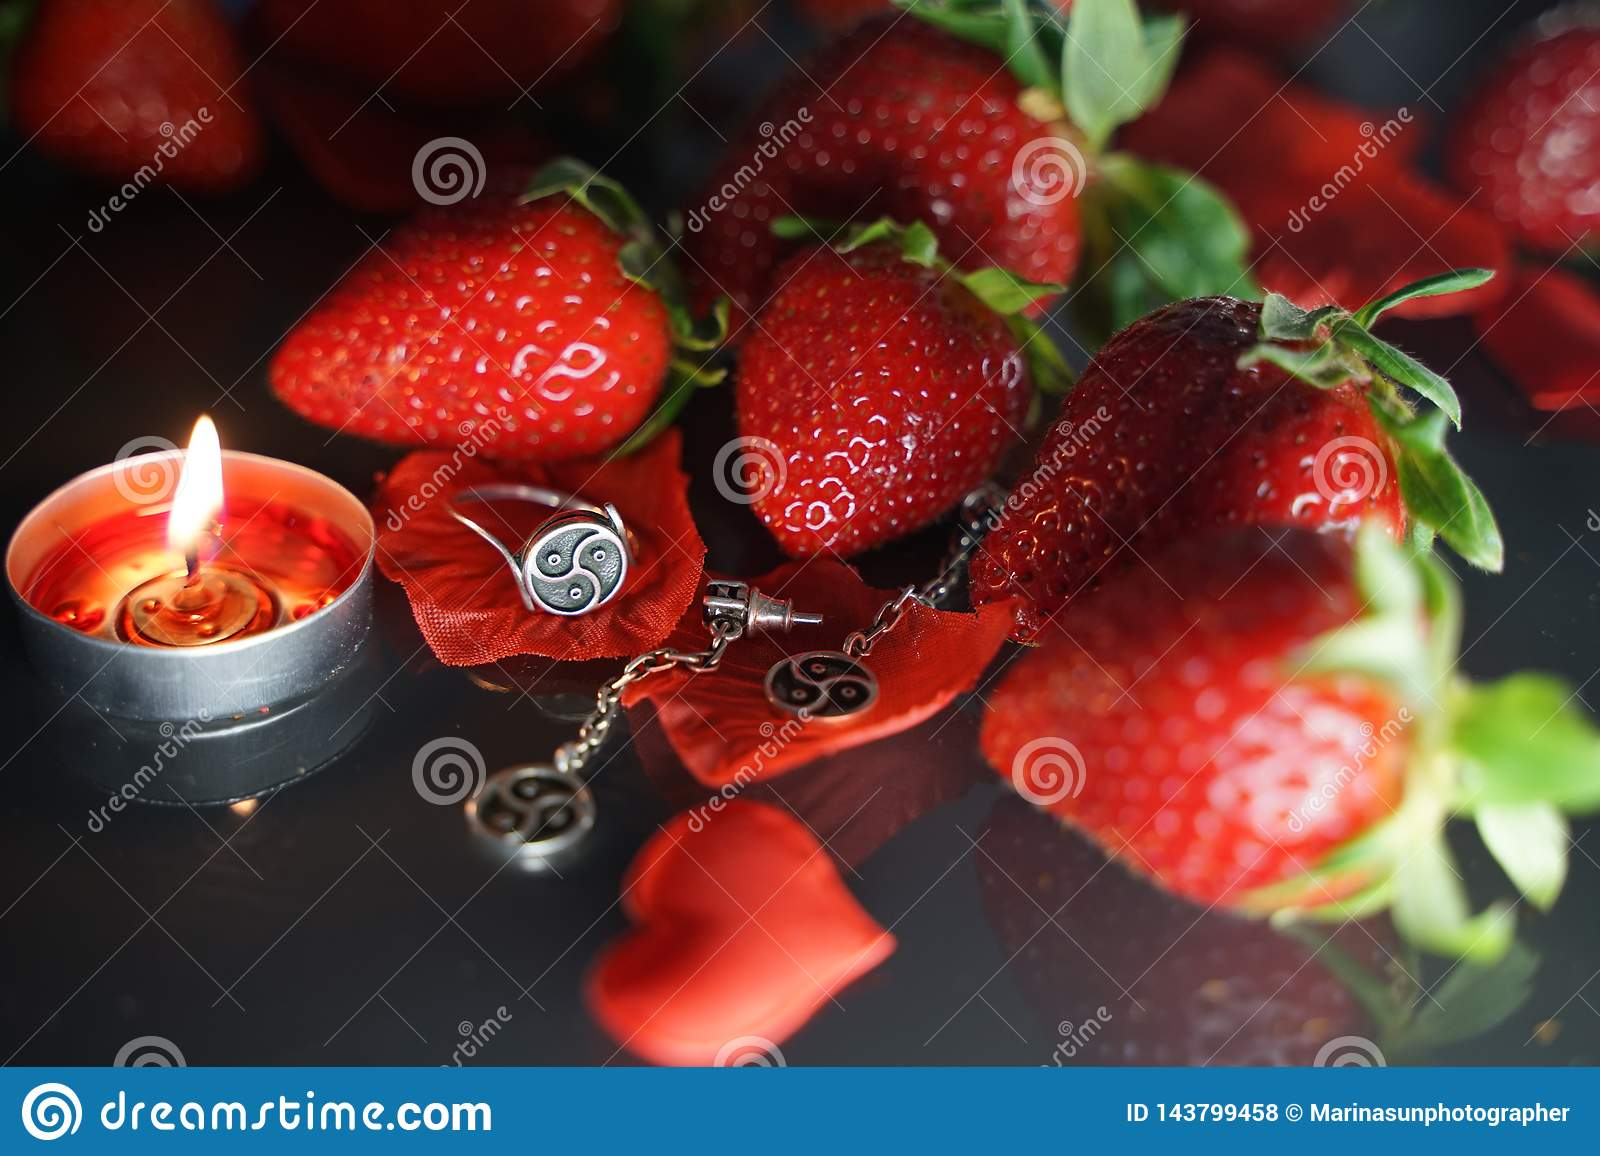 Ring and earrings with the symbol of bdsm lying among the strawberries on the black table top view